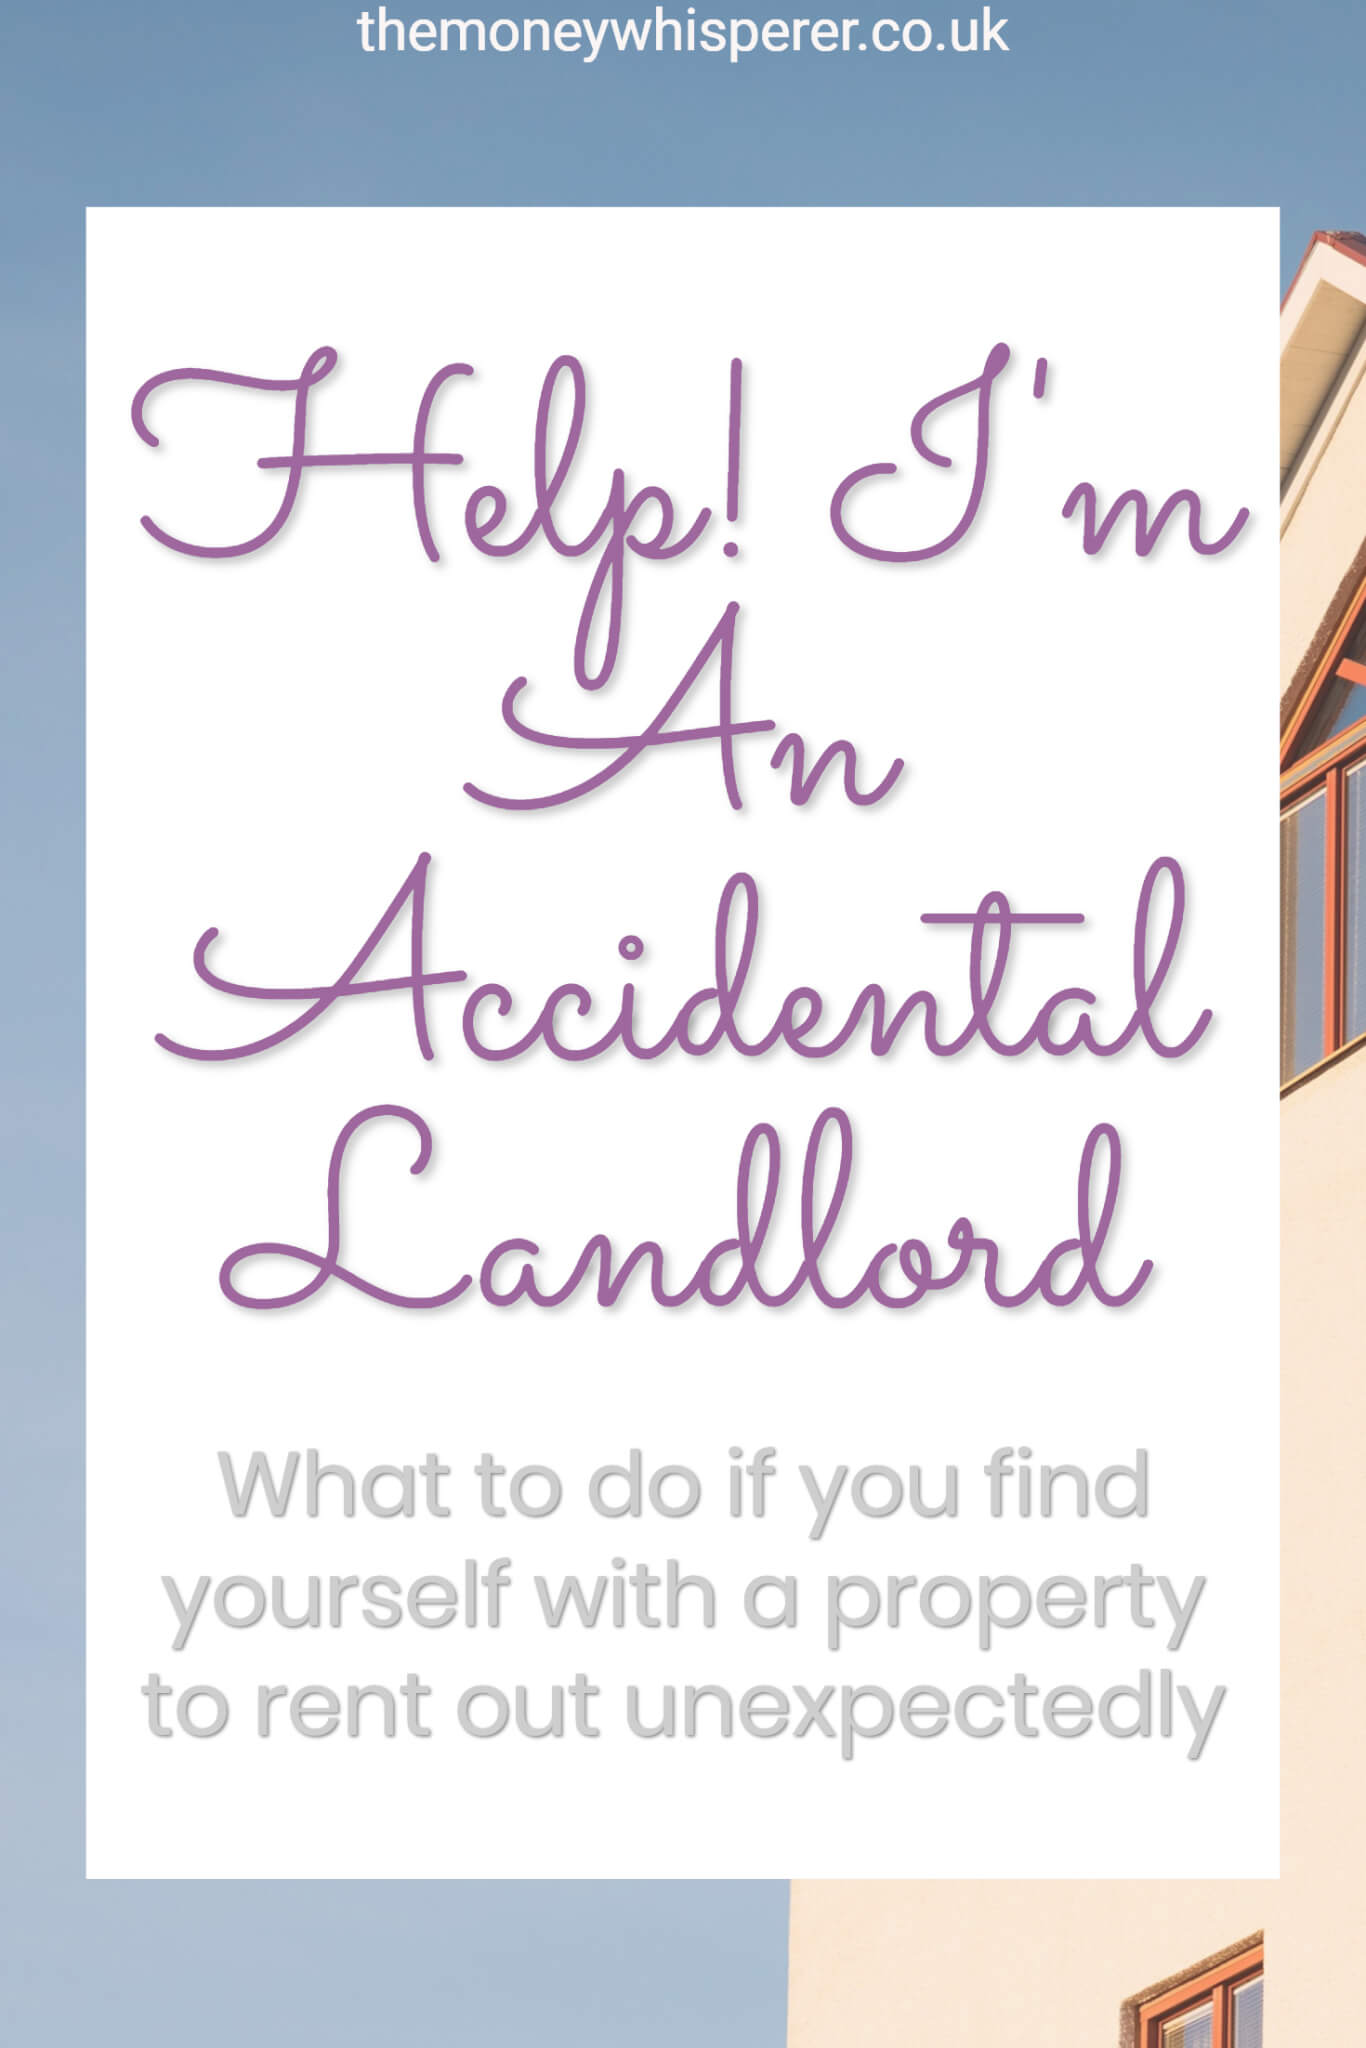 Help I am an accidental landlord! If you find yourself with a property to rent because of relocation, inheritance or because of a relationship break down, you will often be inexperienced in property management. Here is a guide to navigating being an accidental landlord #property #propertymanagement #landlord